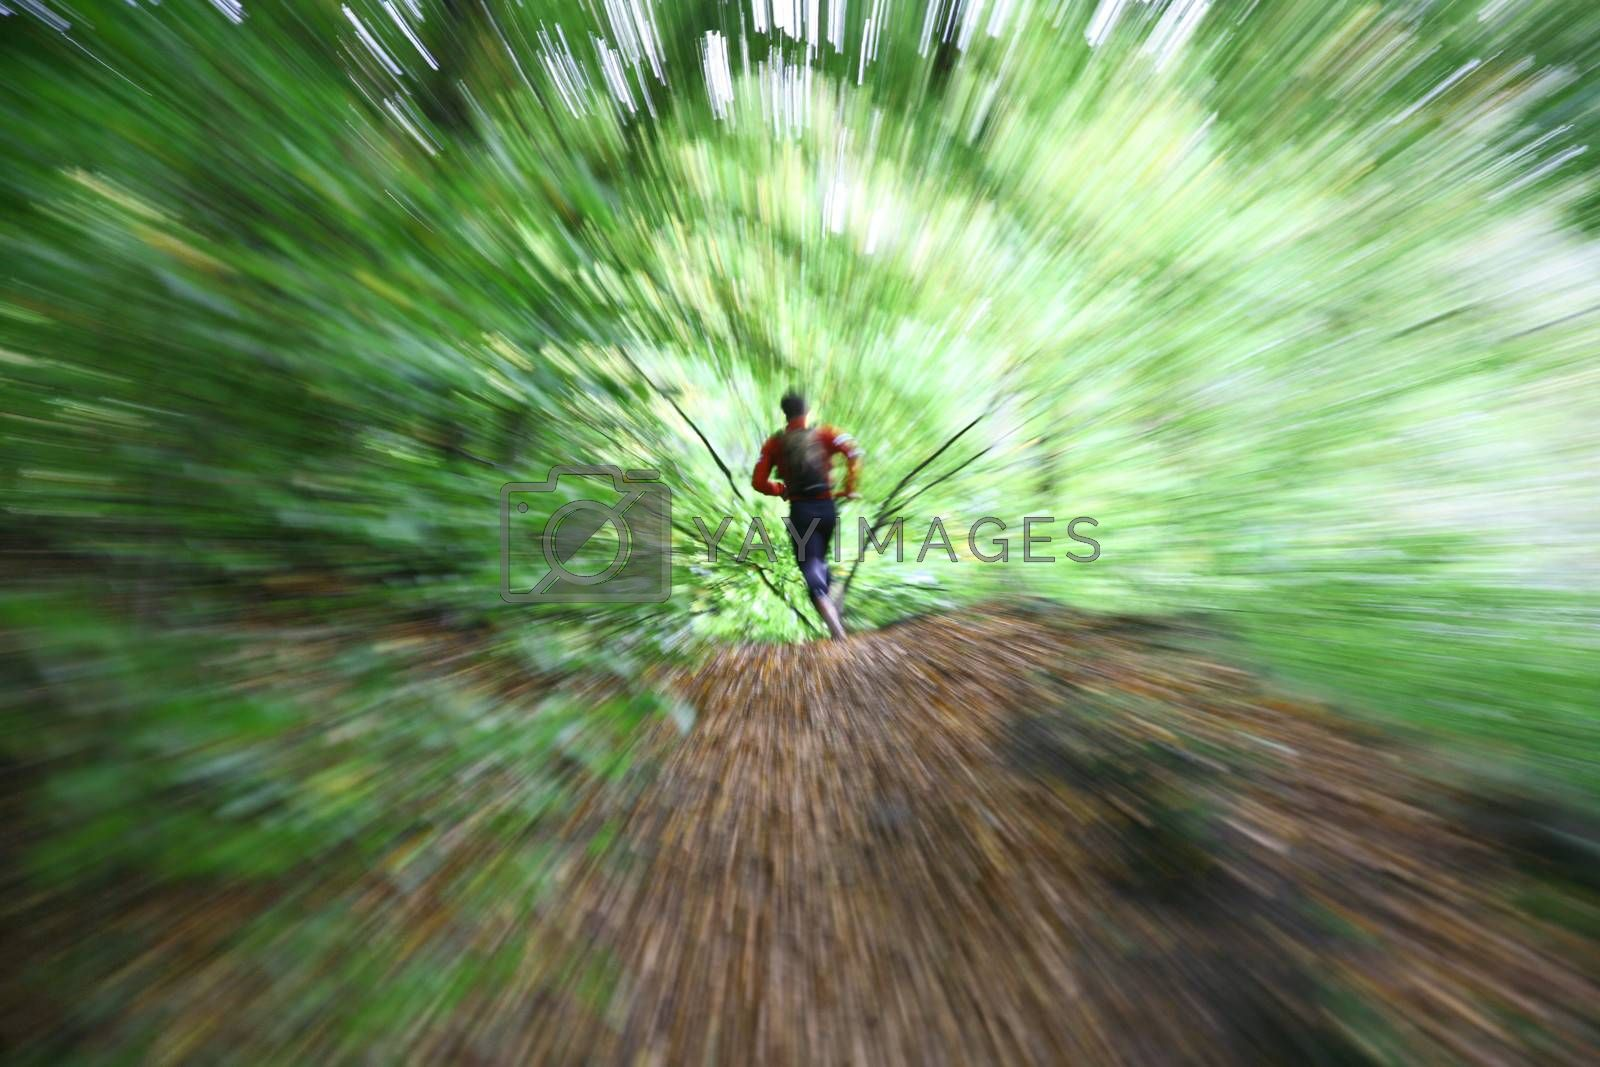 Man running in the forest: no manipulation: zooming on the man with camera on tripod